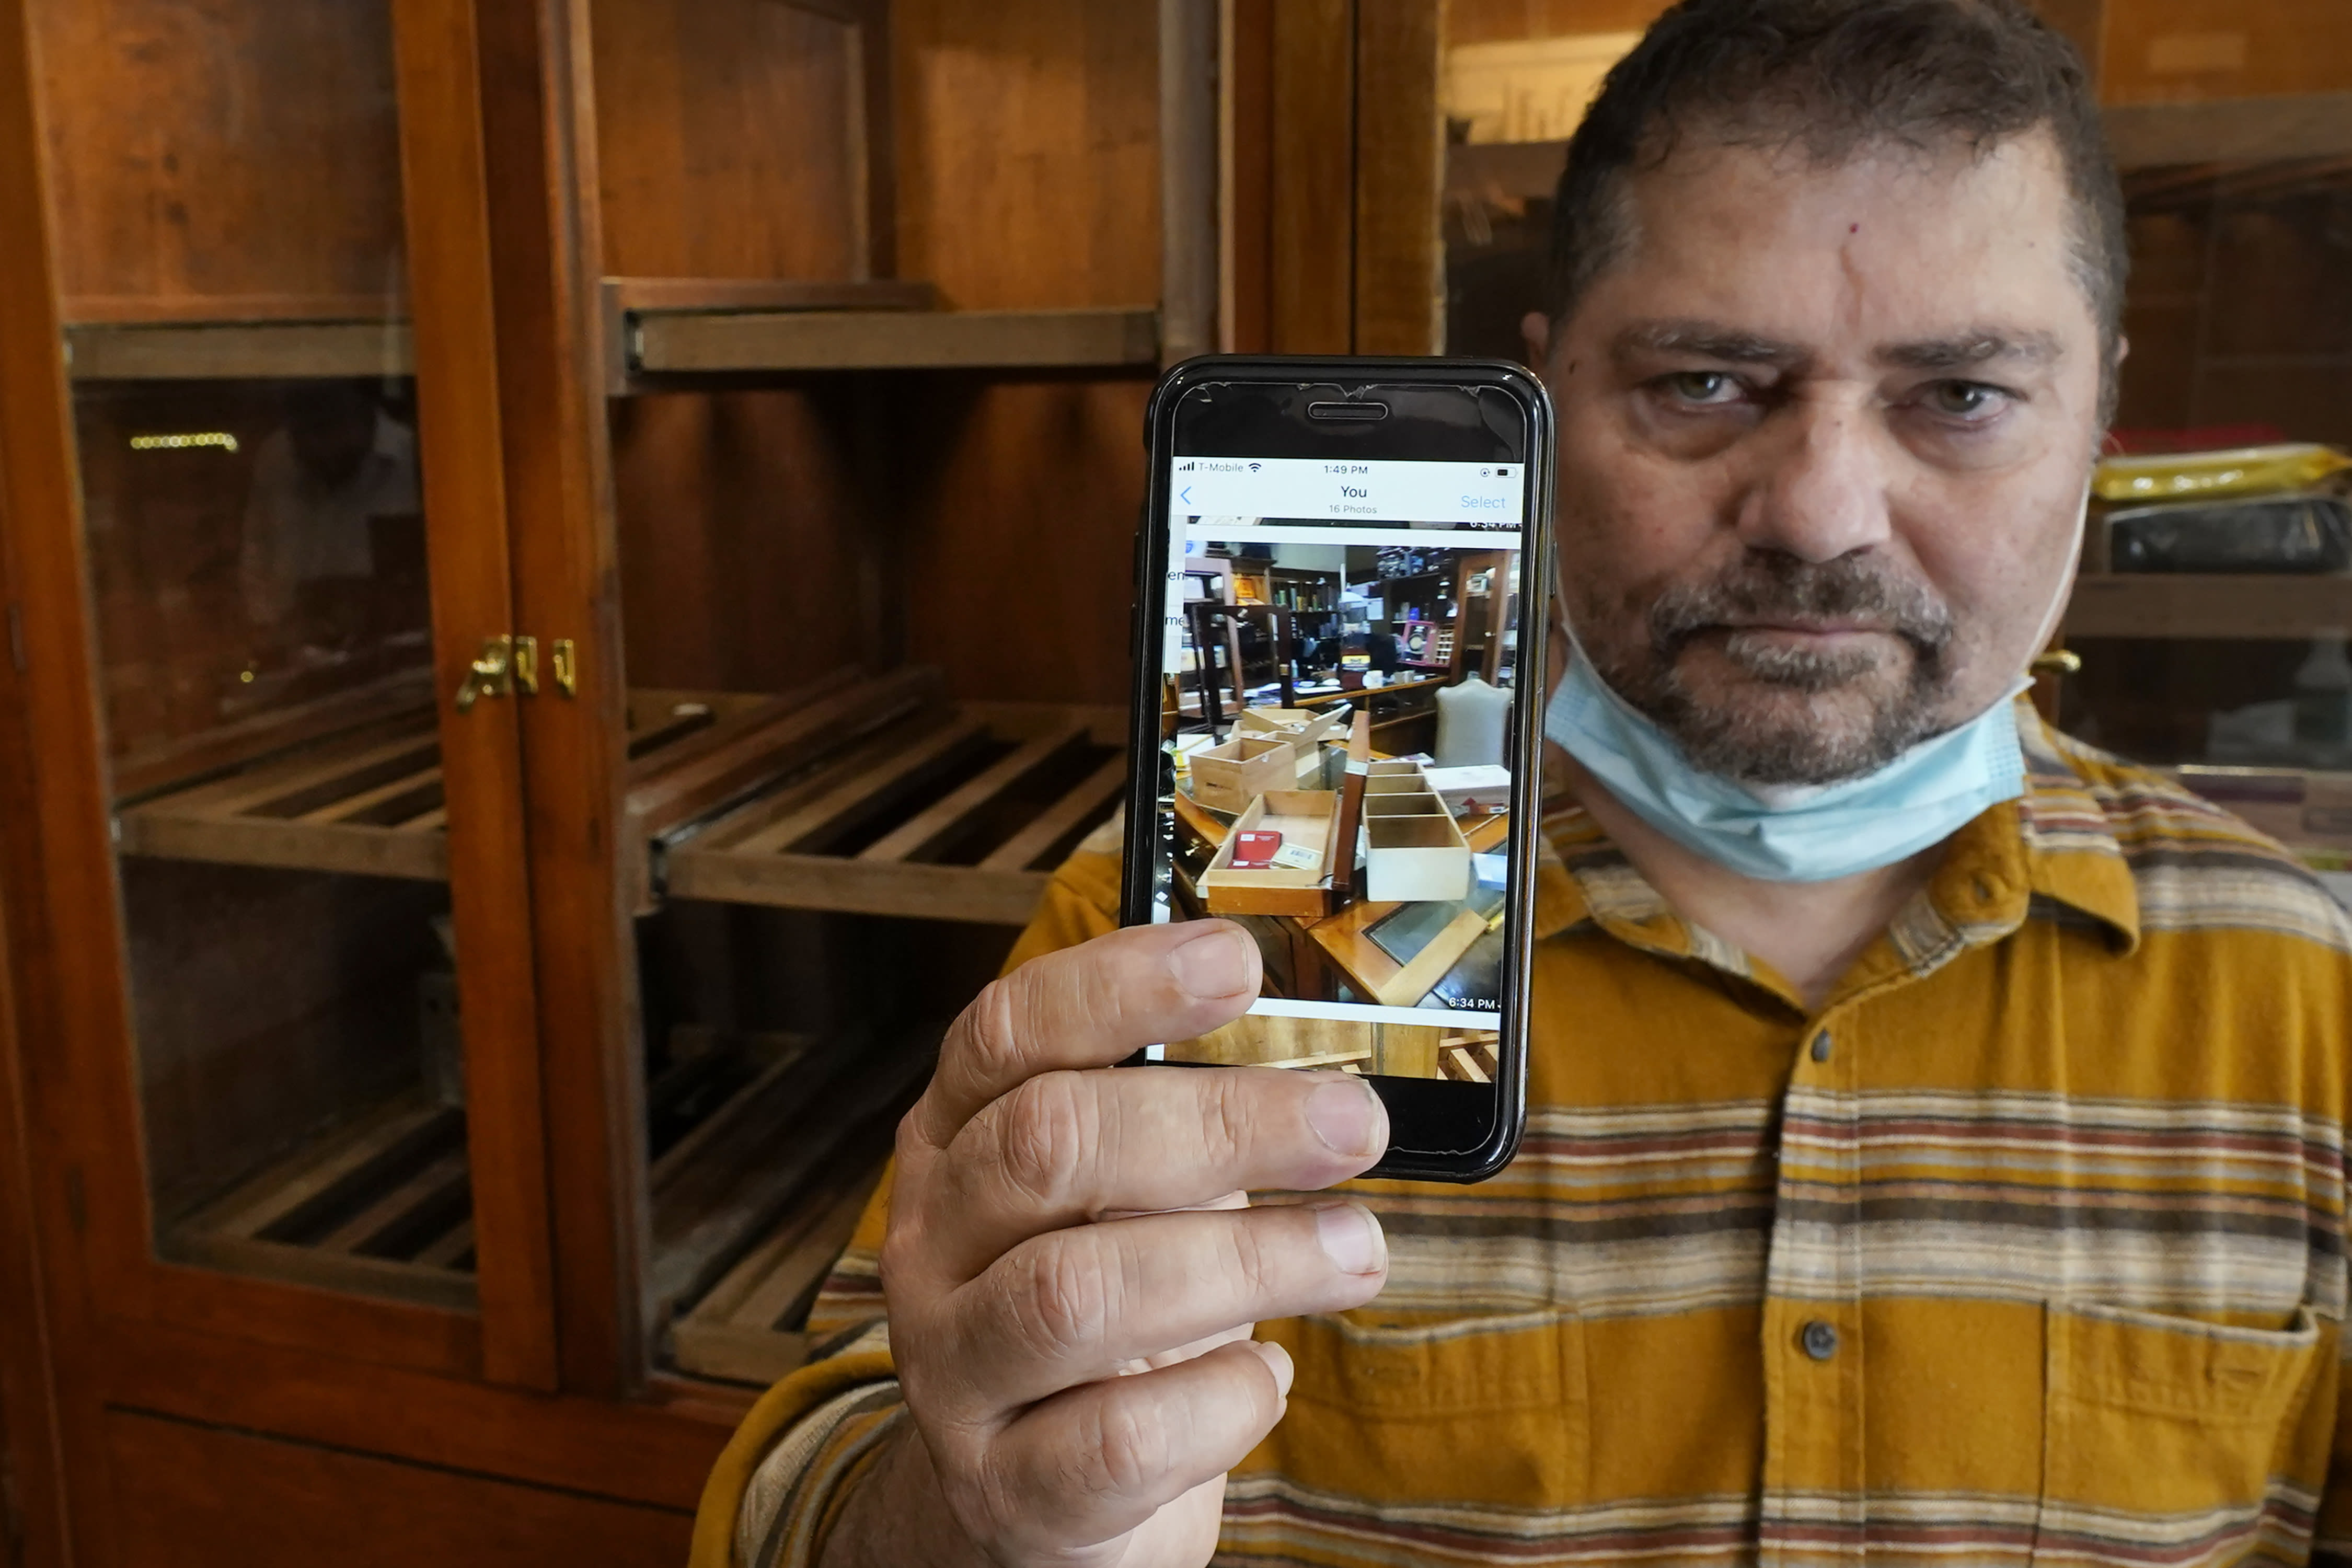 """Neil Mehra, owner of the Hubbard & State Cigar Shop, near Chicago' Magnificent Mile, stands nears an empty humidor on Wednesday, Aug. 12, 2019, holding a cell phone image of his shop after looters stole thousands of dollars worth of merchandise and cash. """"When I got here and saw what they'd done, I almost cried,"""" said Mehra. """"This is my life. I really don't know if we're going to survive this."""" (AP Photo/Charles Rex Arbogast)"""